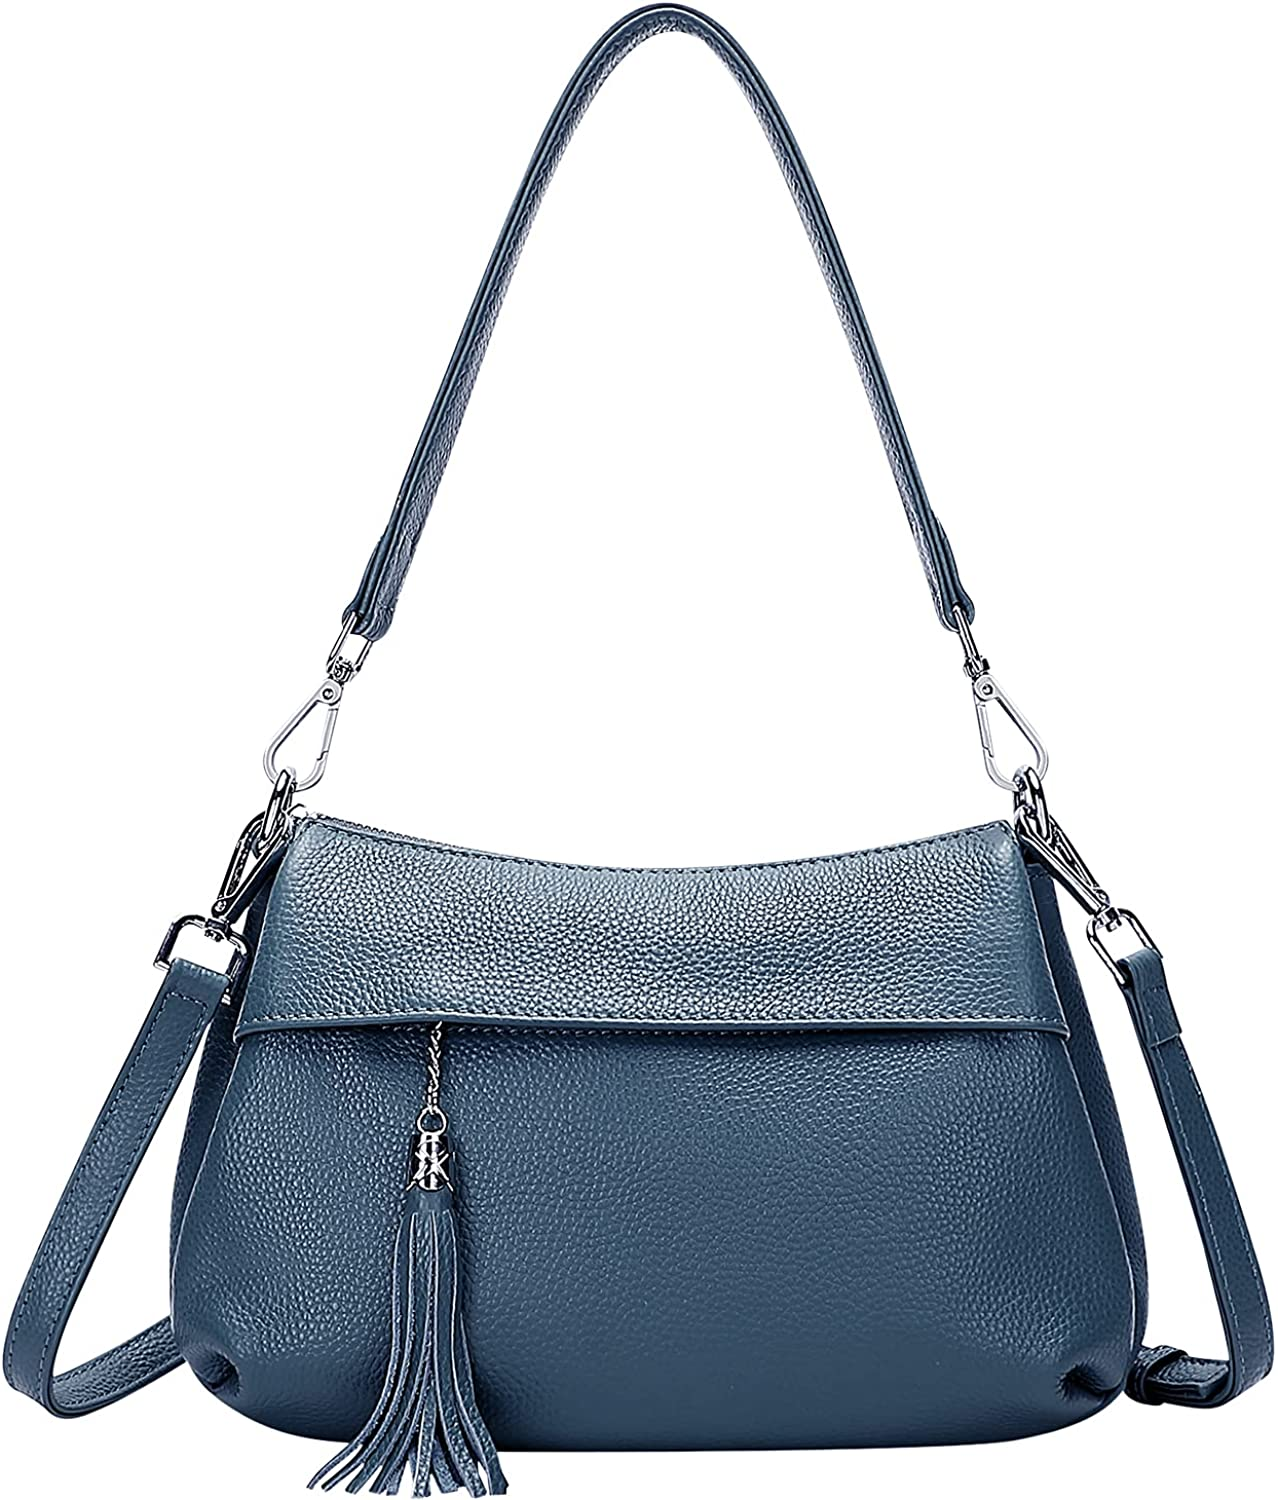 OVER OFFicial store EARTH Genuine Leather Handbags Crossbody Ladi for Women Bag Opening large release sale